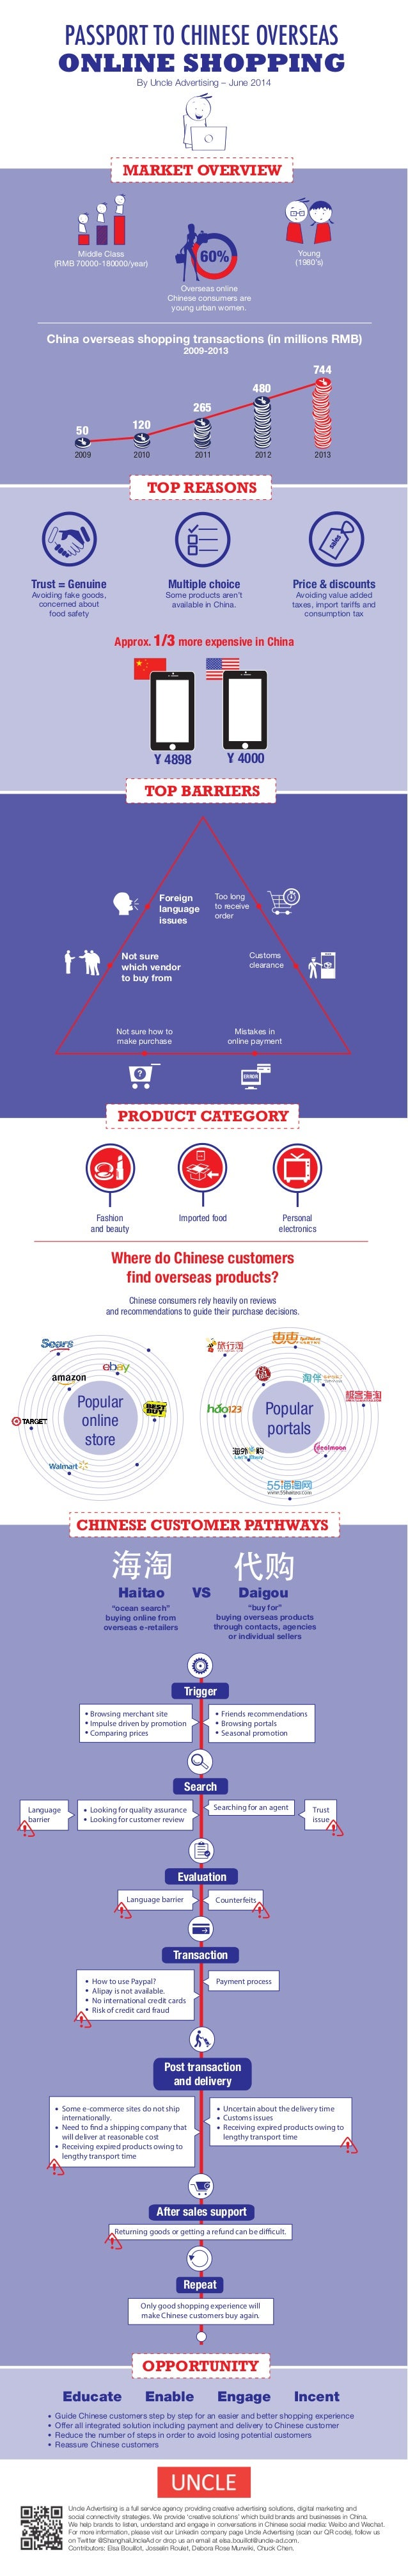 sales PASSPORT TO CHINESE OVERSEAS ONLINE SHOPPING By Uncle Advertising – June 2014 MARKET OVERVIEW TOP REASONS Young (198...